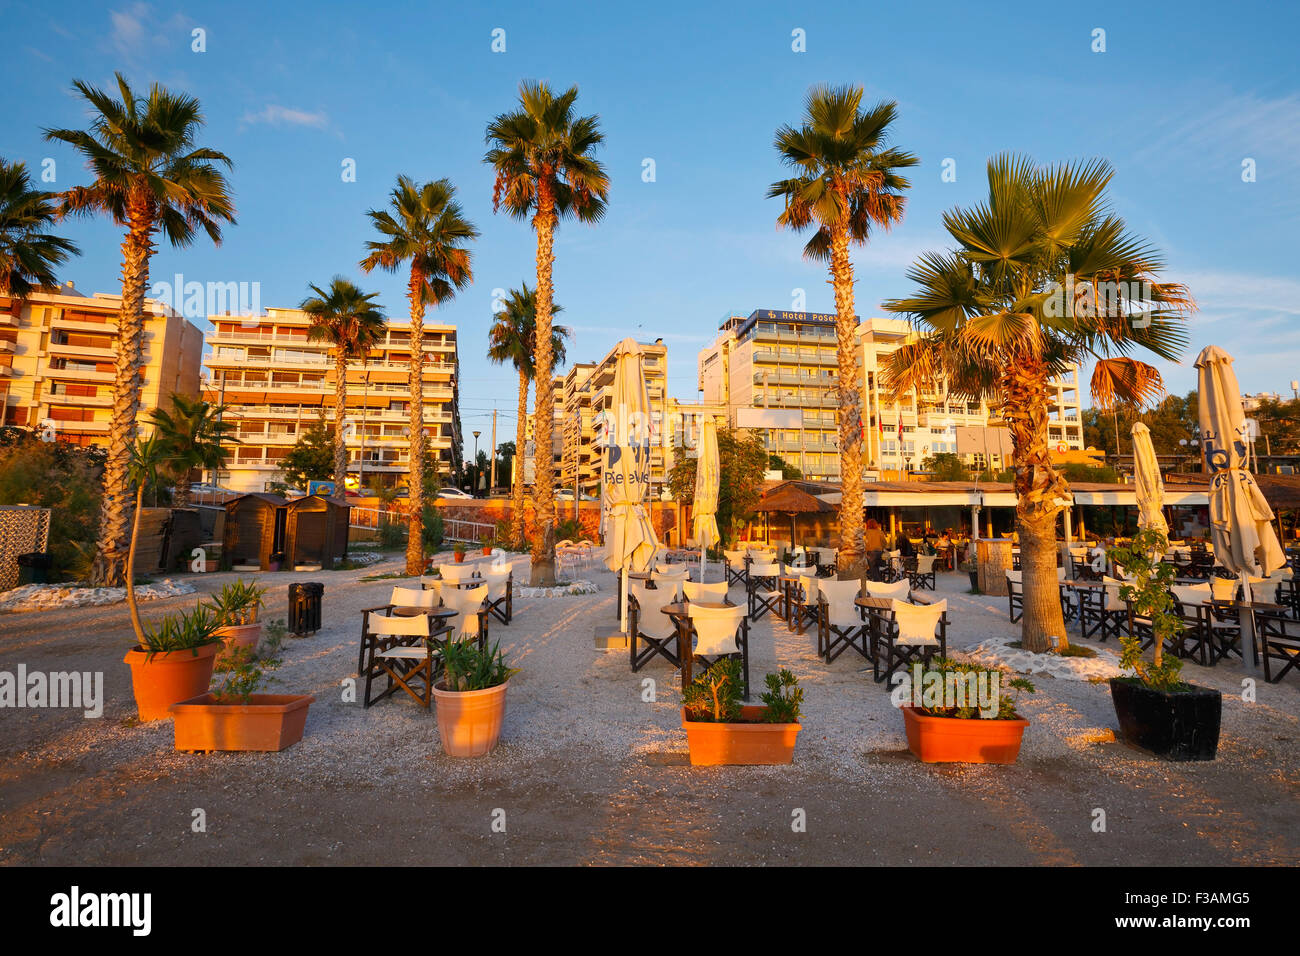 Umbrellas and tables on the beach in Palaio Faliro in Athens, Greece - Stock Image